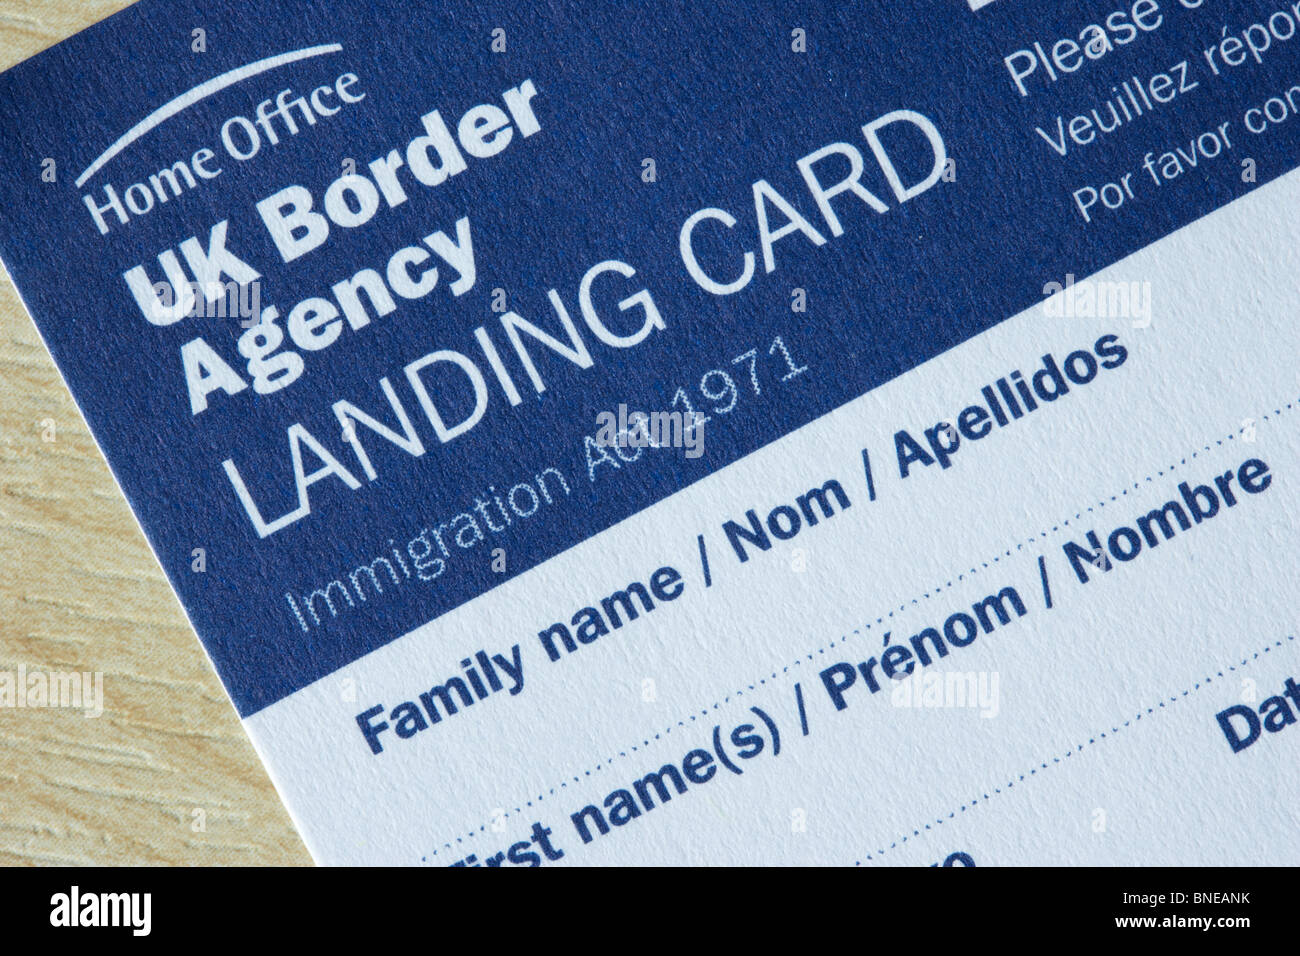 UK border agency landing card immigration form Stock Photo ...